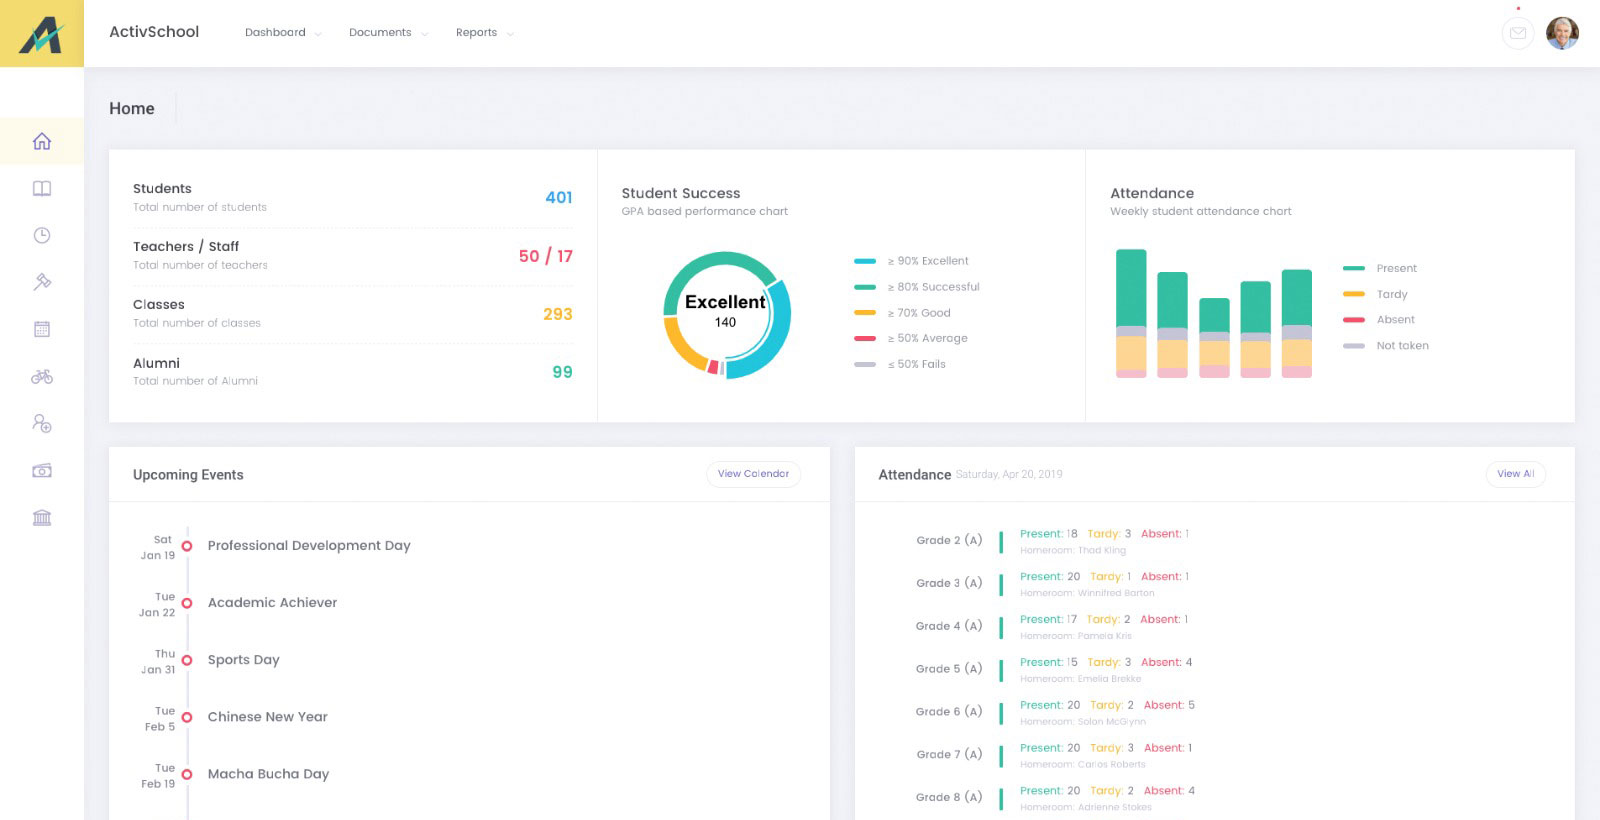 ActivSchool Dashboard